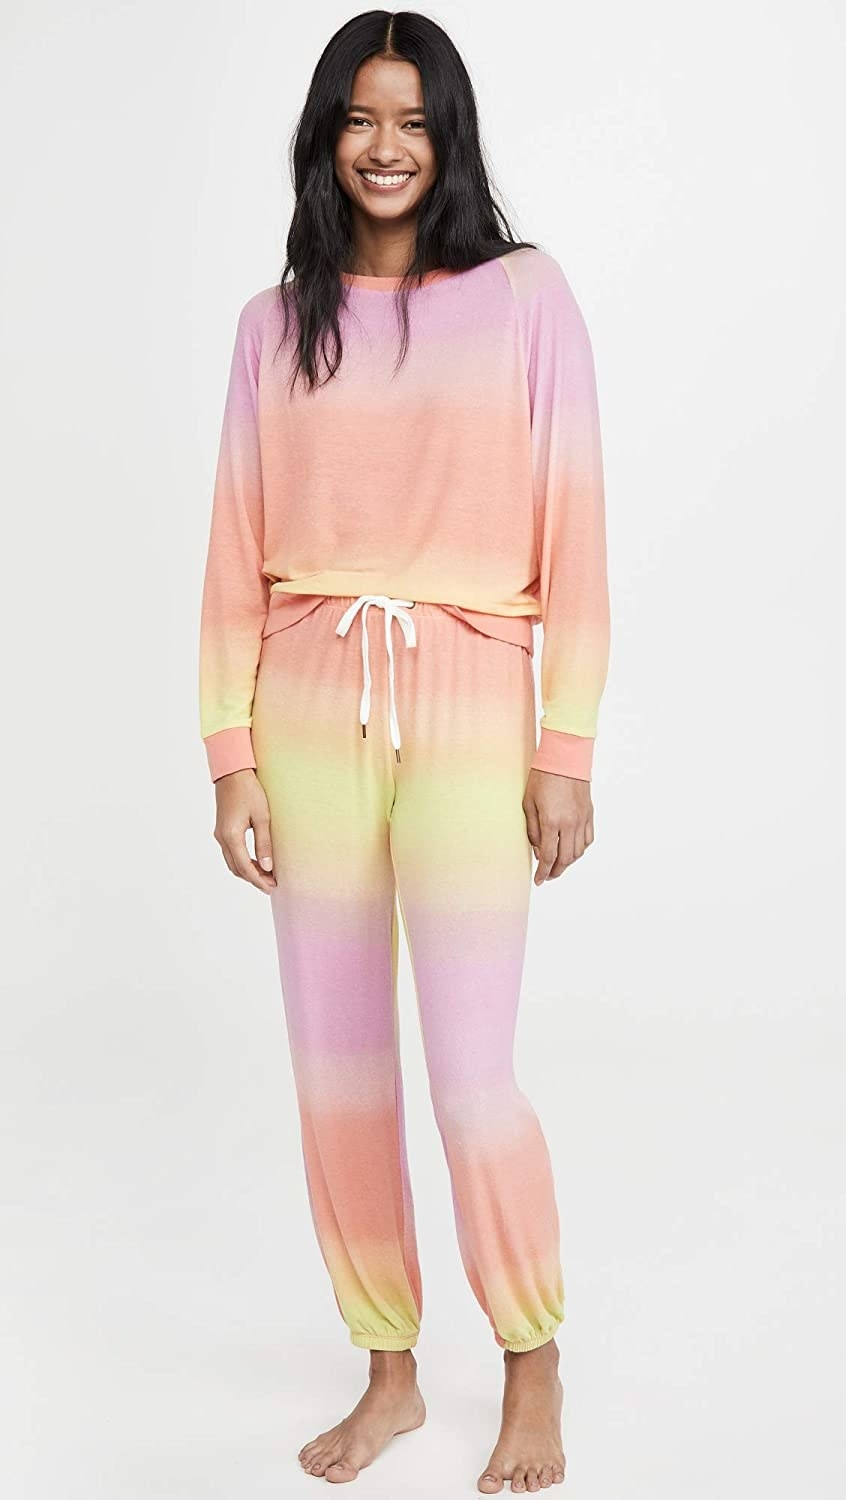 The peach, pink, and yellow sweatshirt and pants set